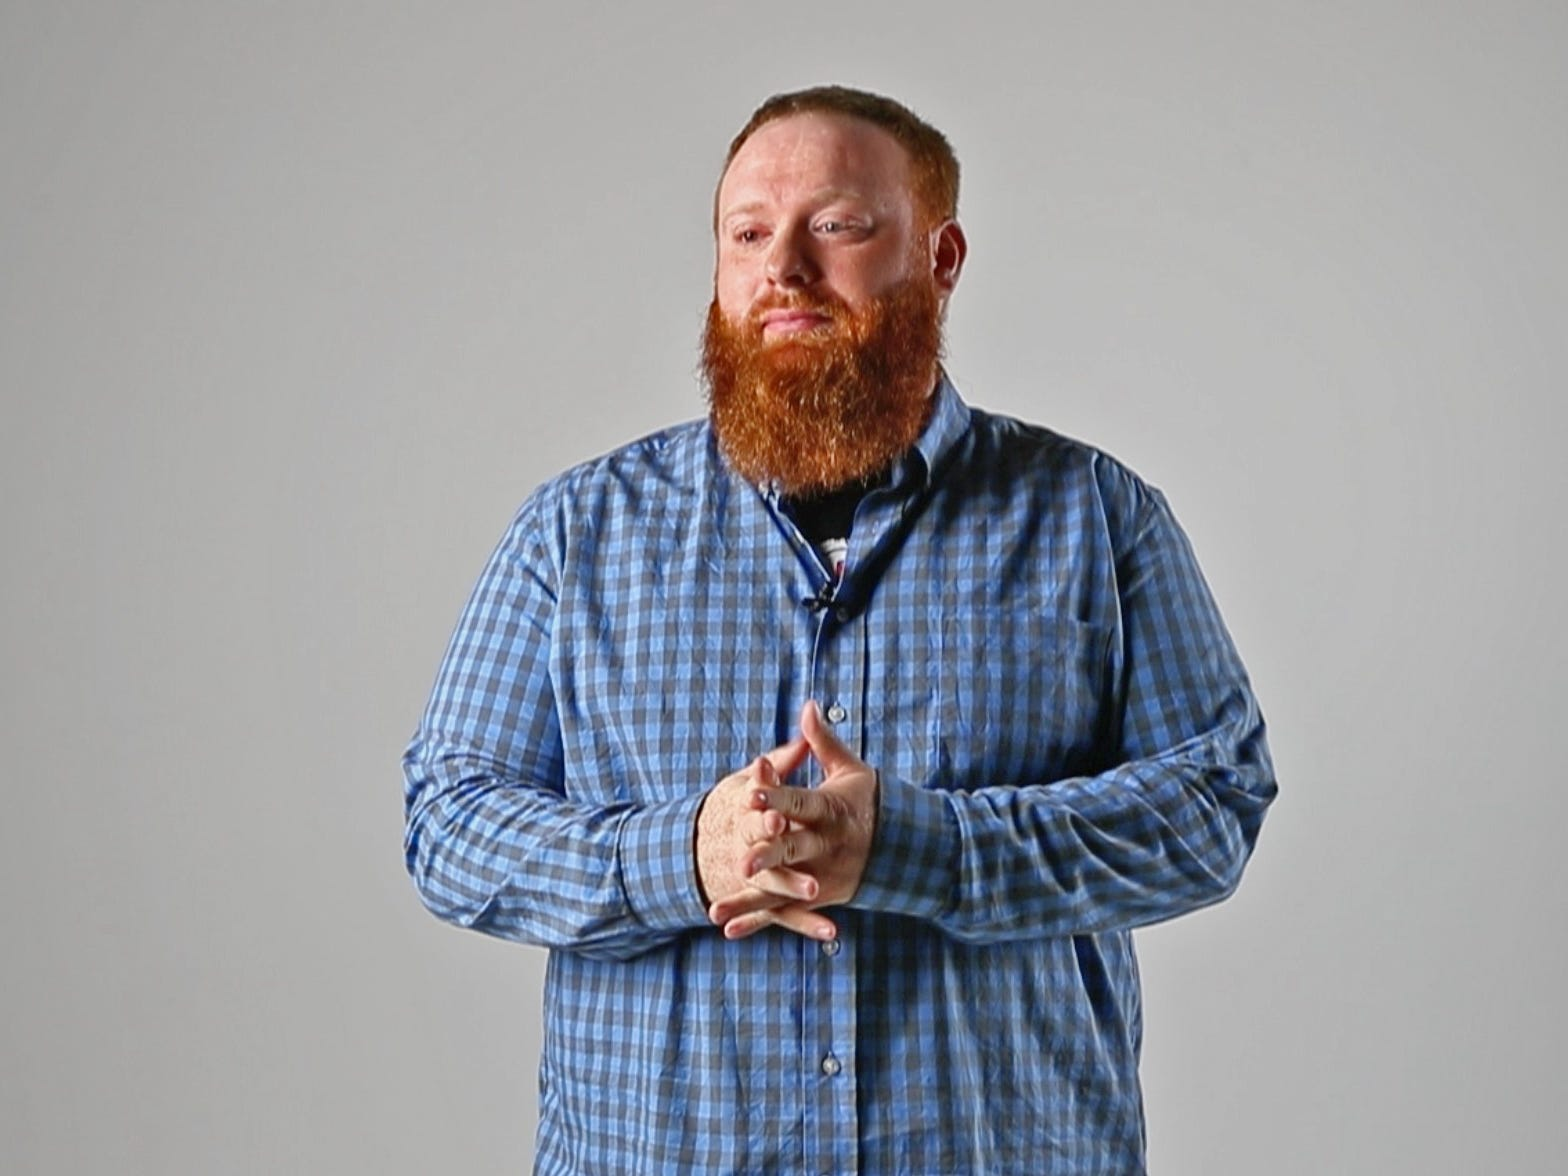 Brent Terhune, seen Friday, Sept. 7, 2018, is a stand-up comedian who has recently received a lot of exposure for his redneck parody videos that use satire to address hot-button topics in the news.